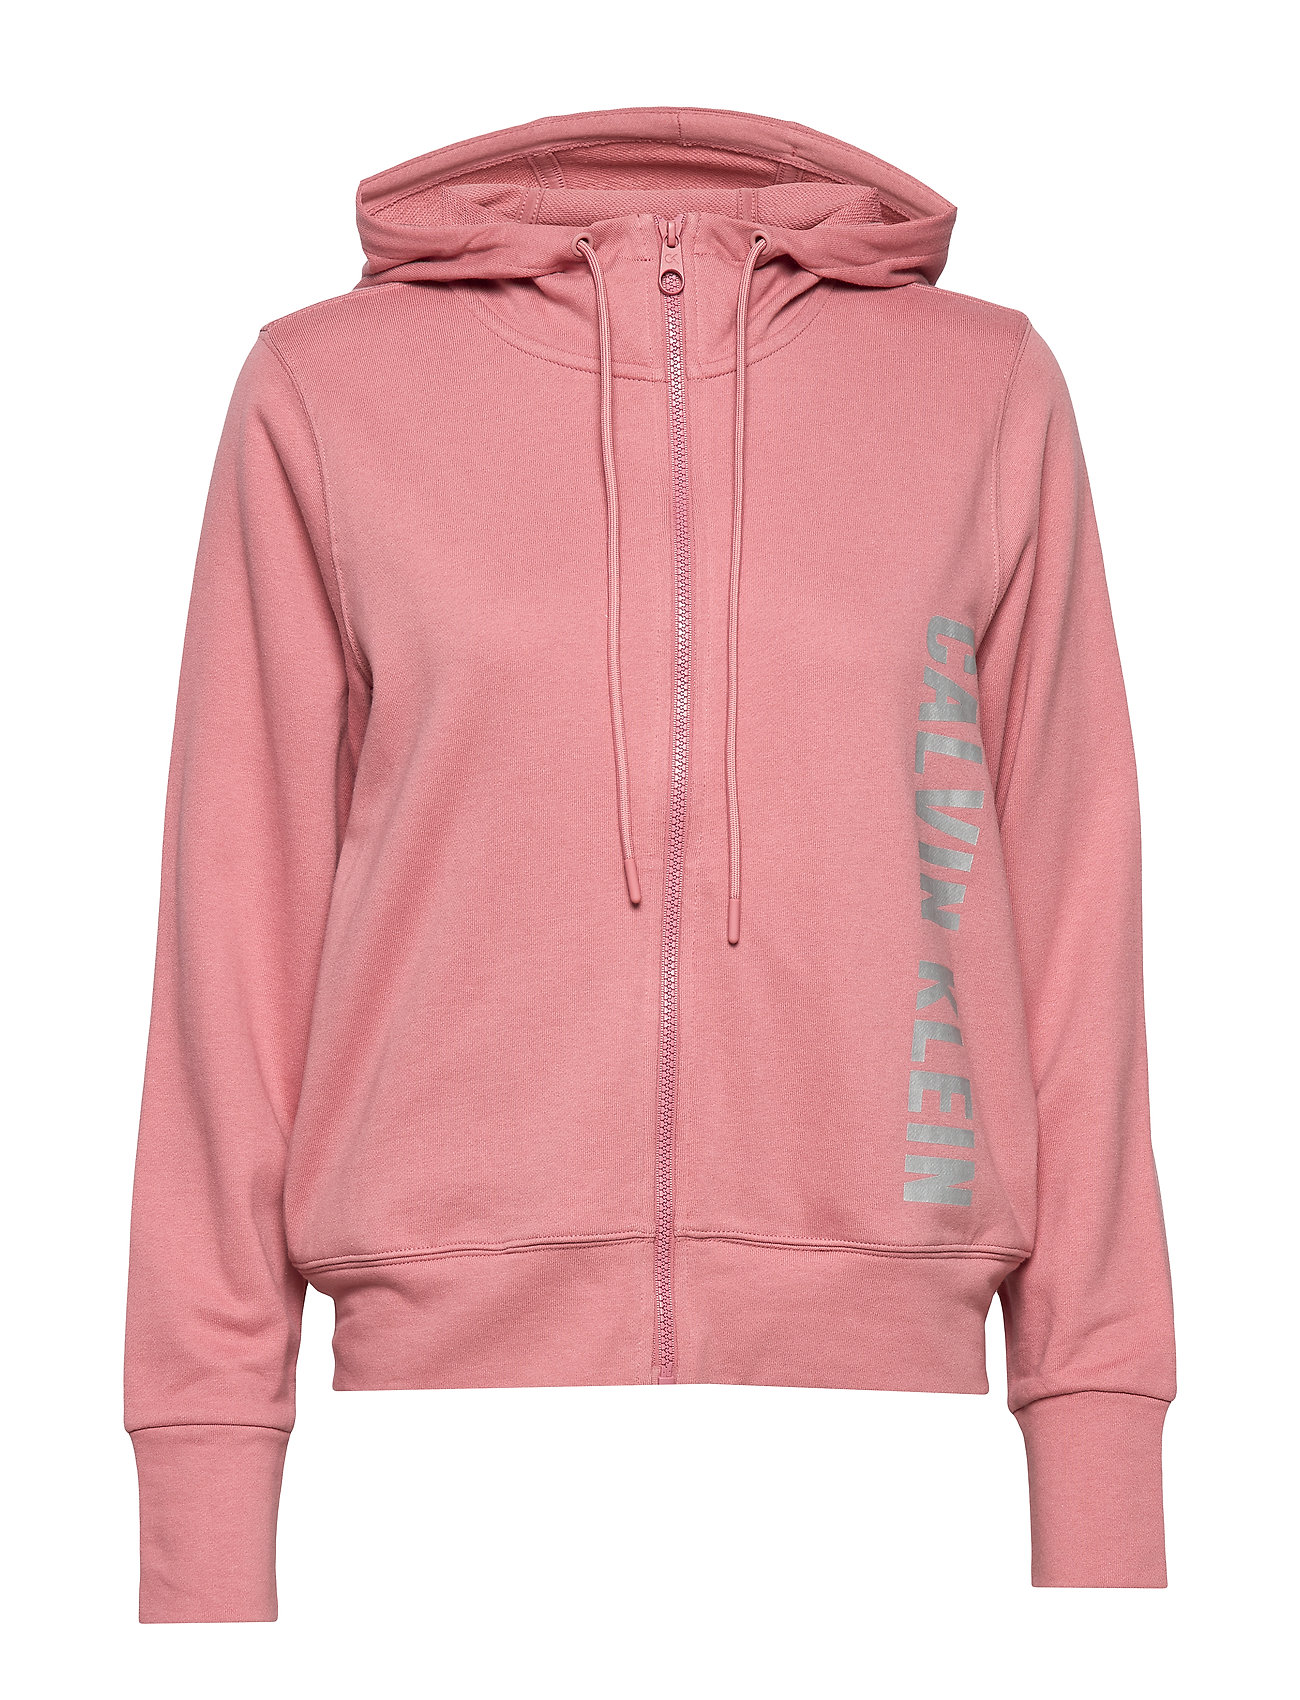 Calvin Klein Performance FULL ZIP HOODED JACKET - DUSTY PINK